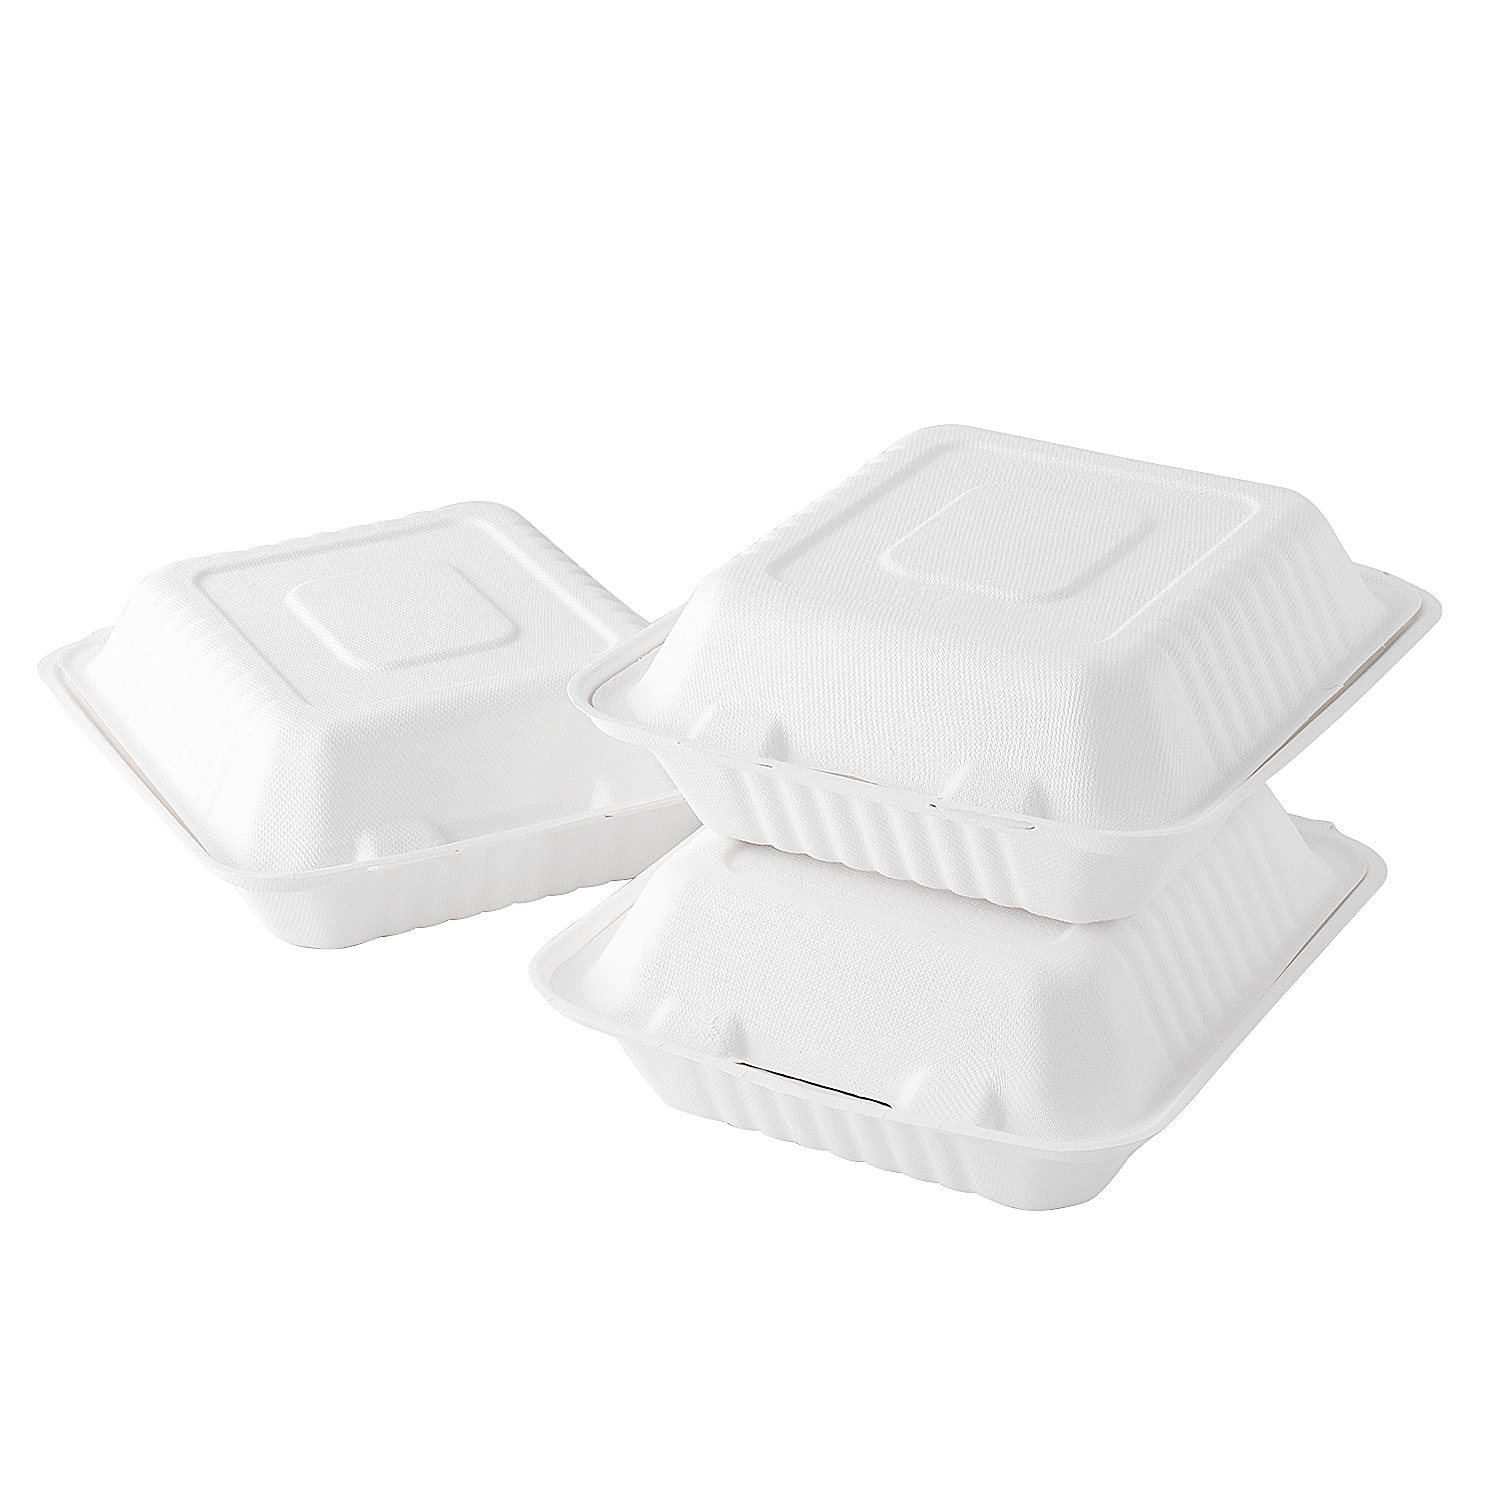 "8""x8"" x3'' Recyclable Bagasse Fast Food Clamshell Box"